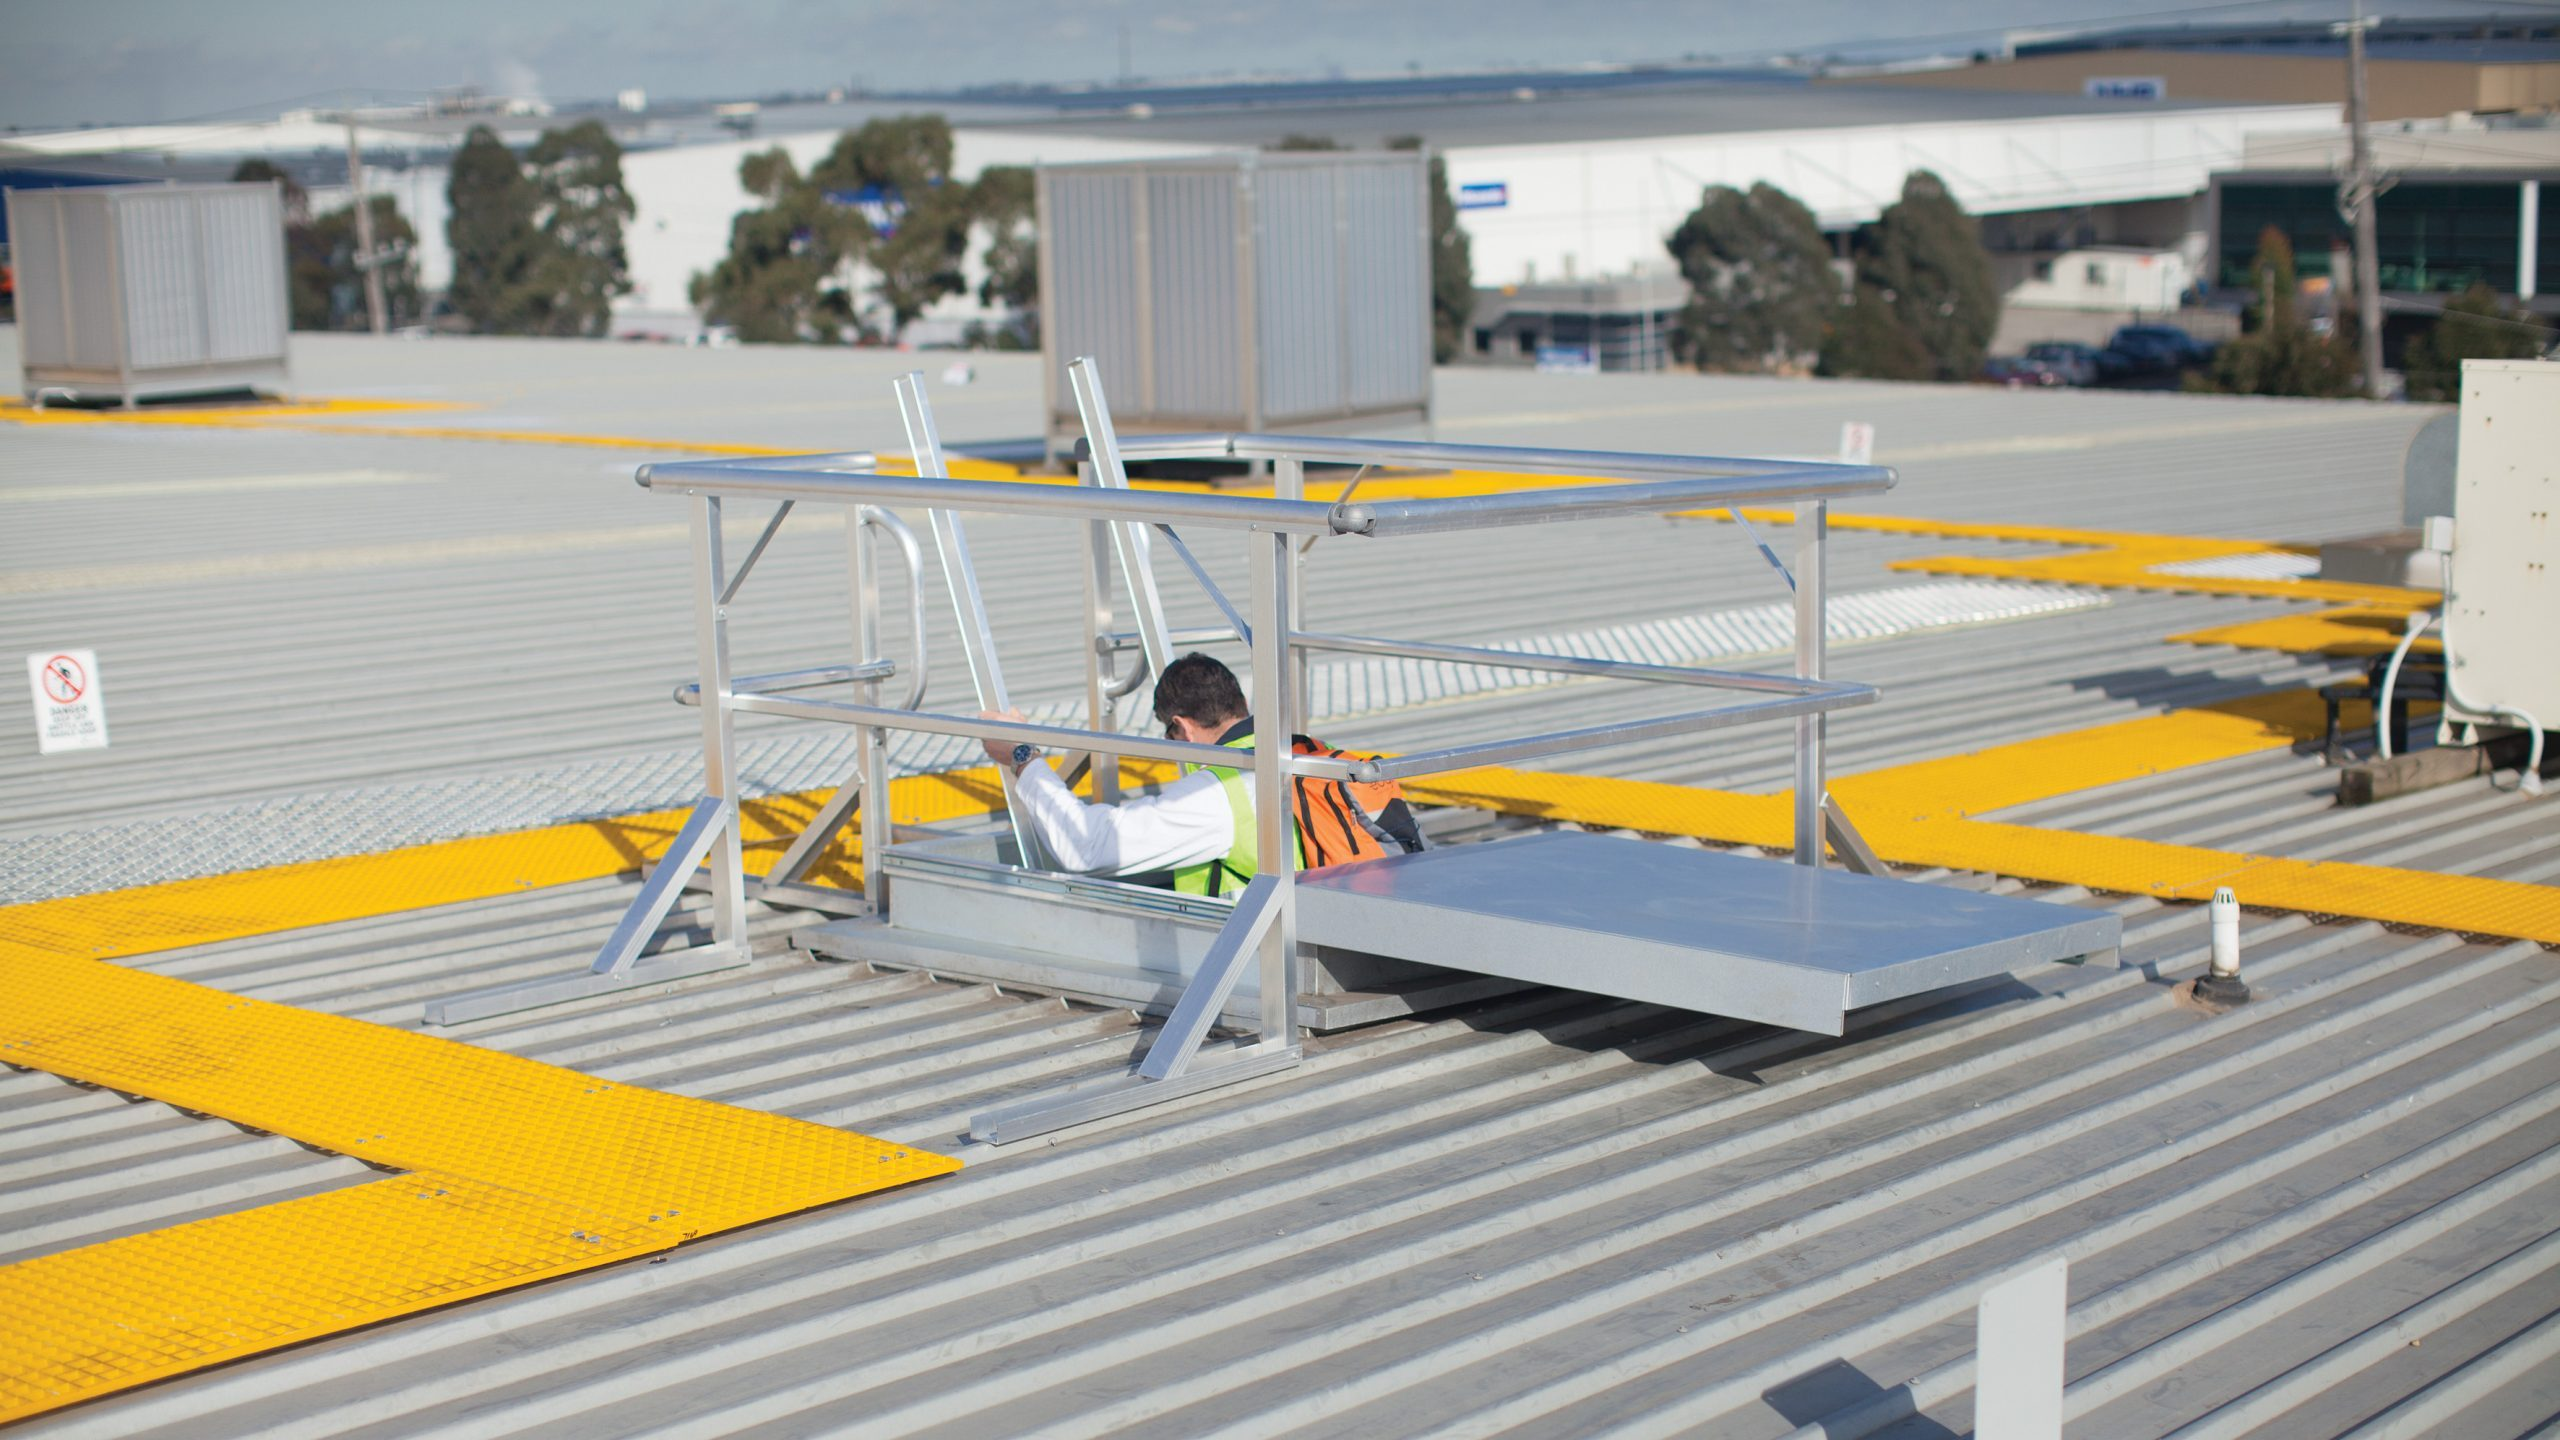 Guardrail Kit for Access Hatch - Height Safety System - Sydney